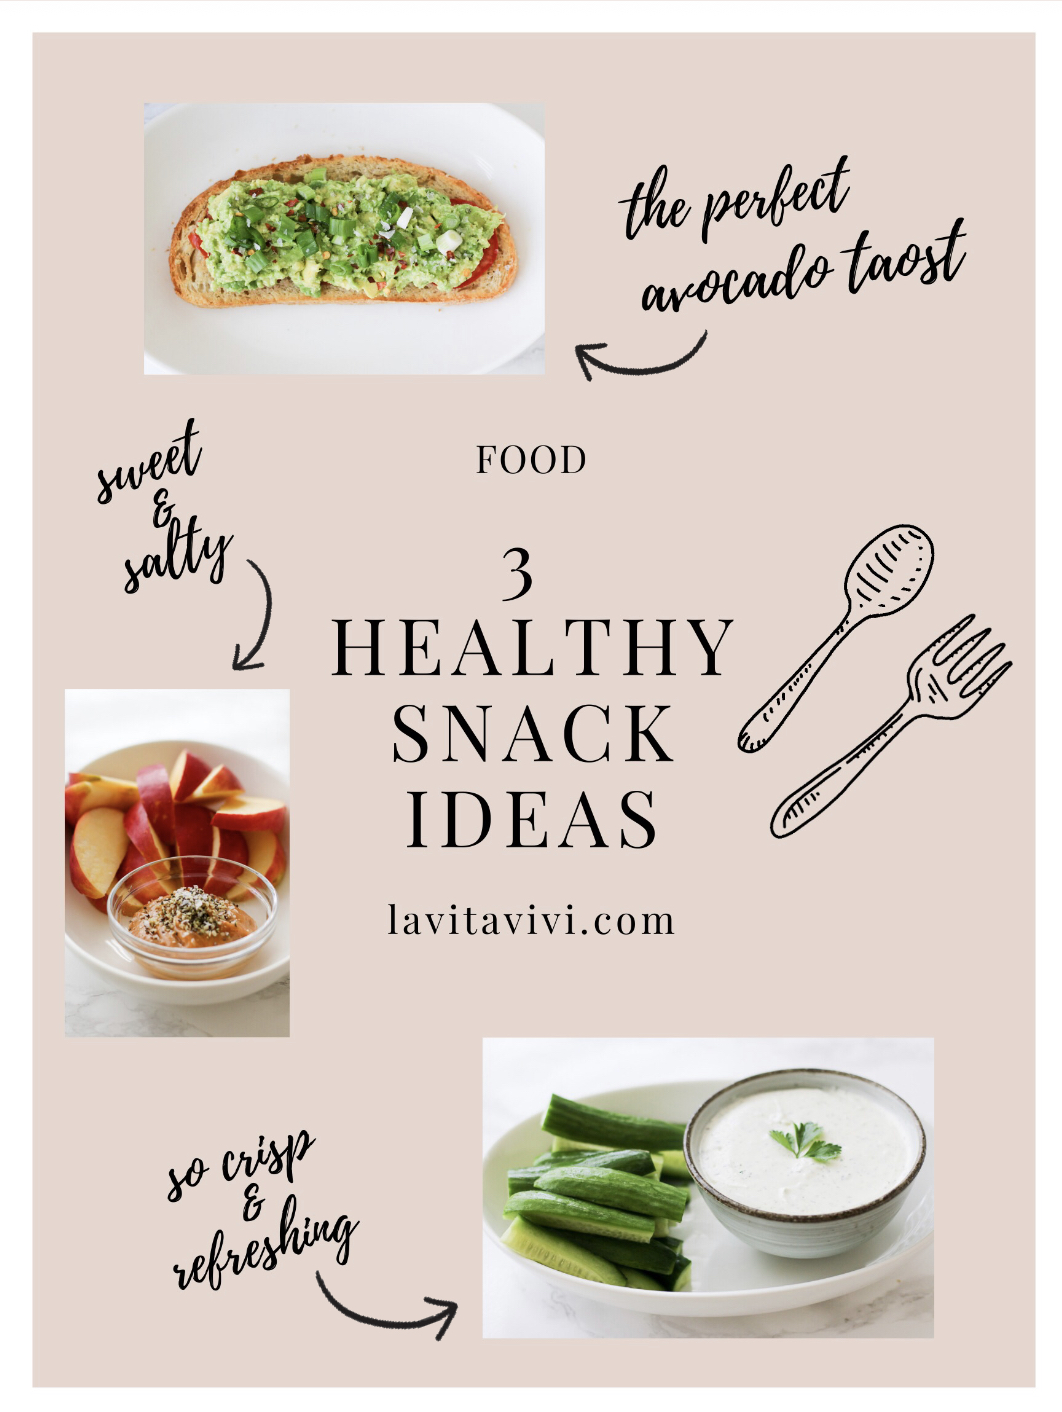 3 HEALTHY SNACK IDEAS